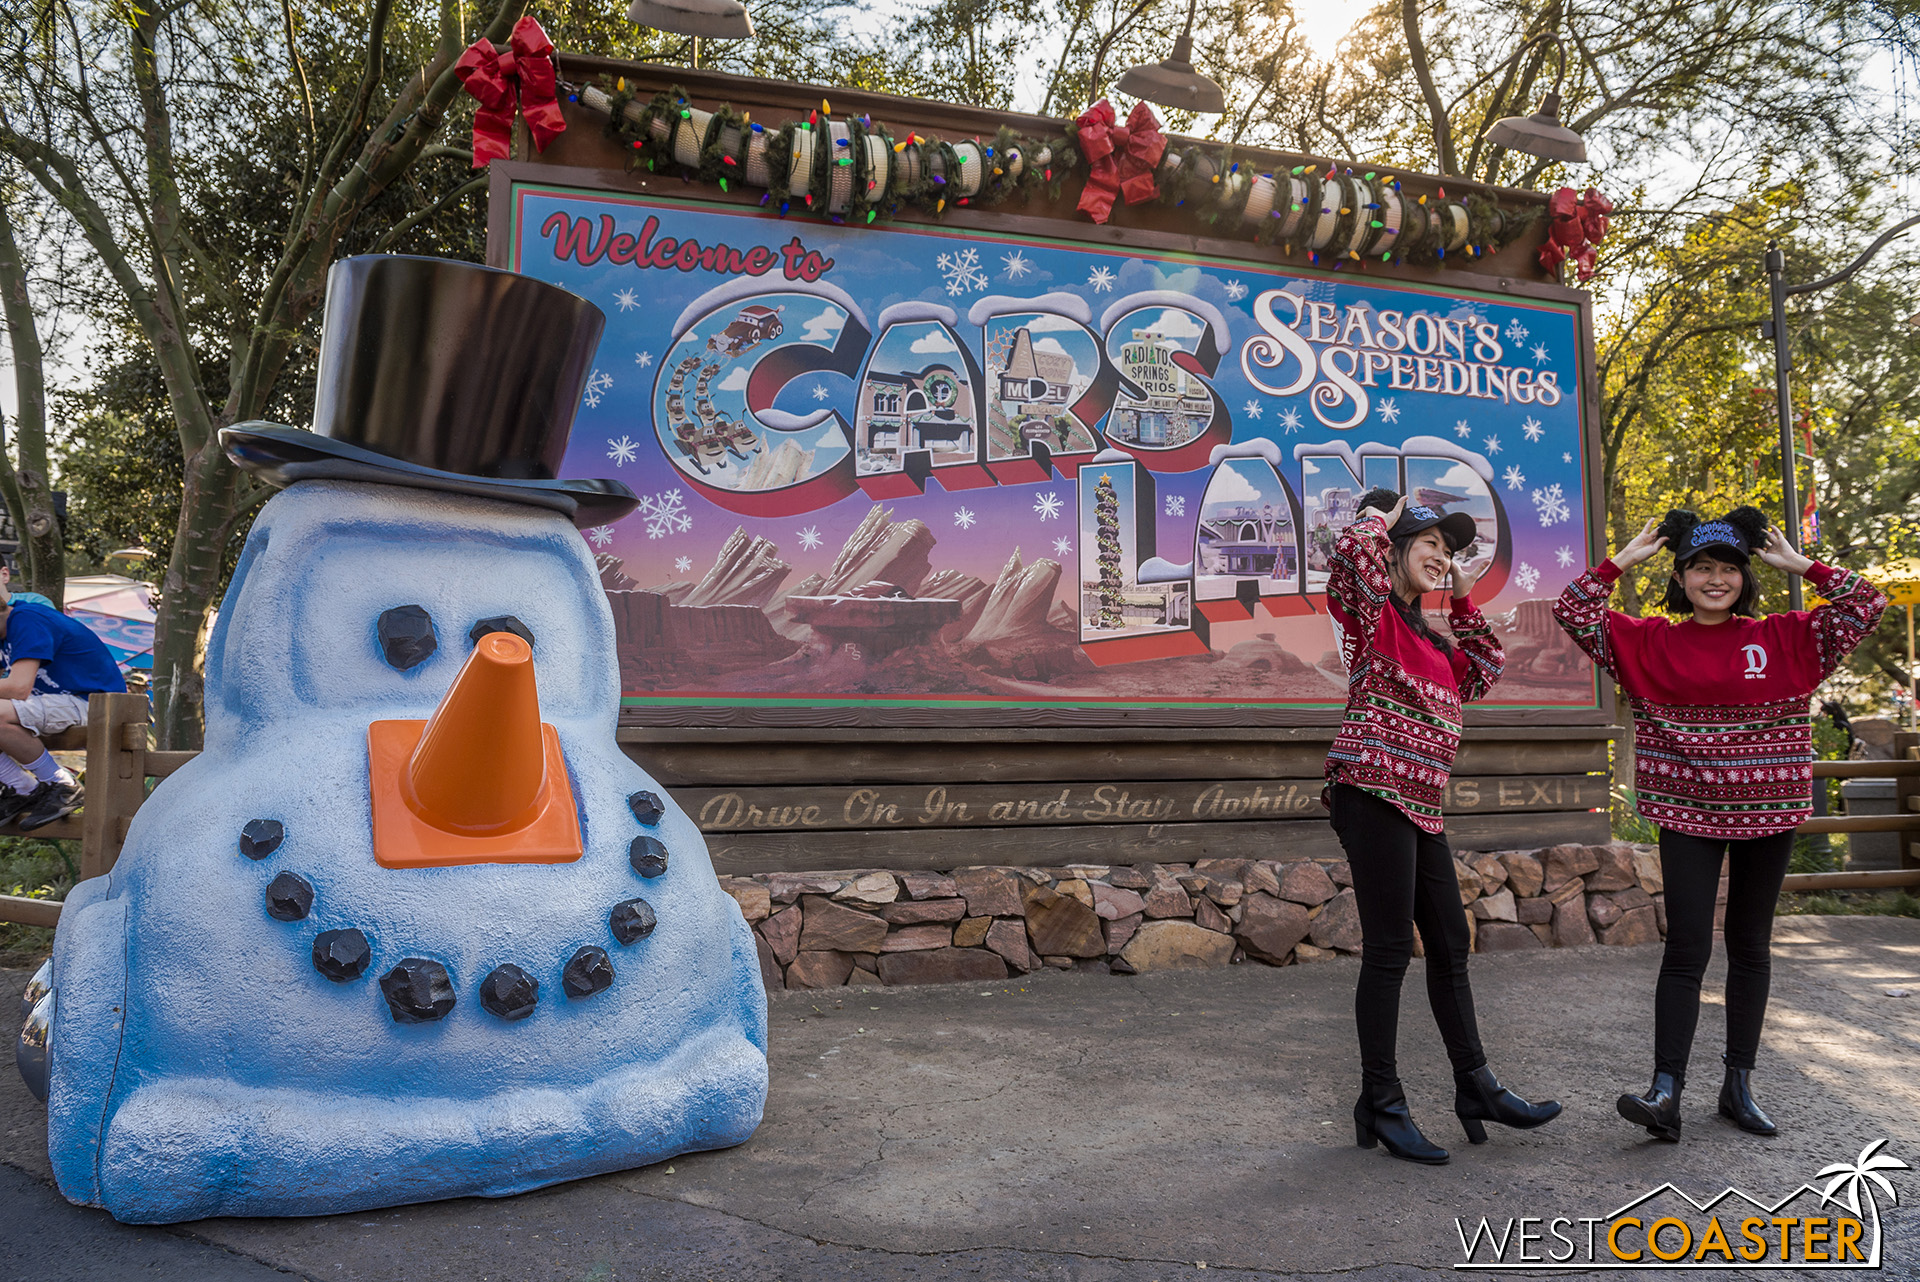 The Cars Land billboard has a seasonal overlay and is still attracting plenty of tourists.